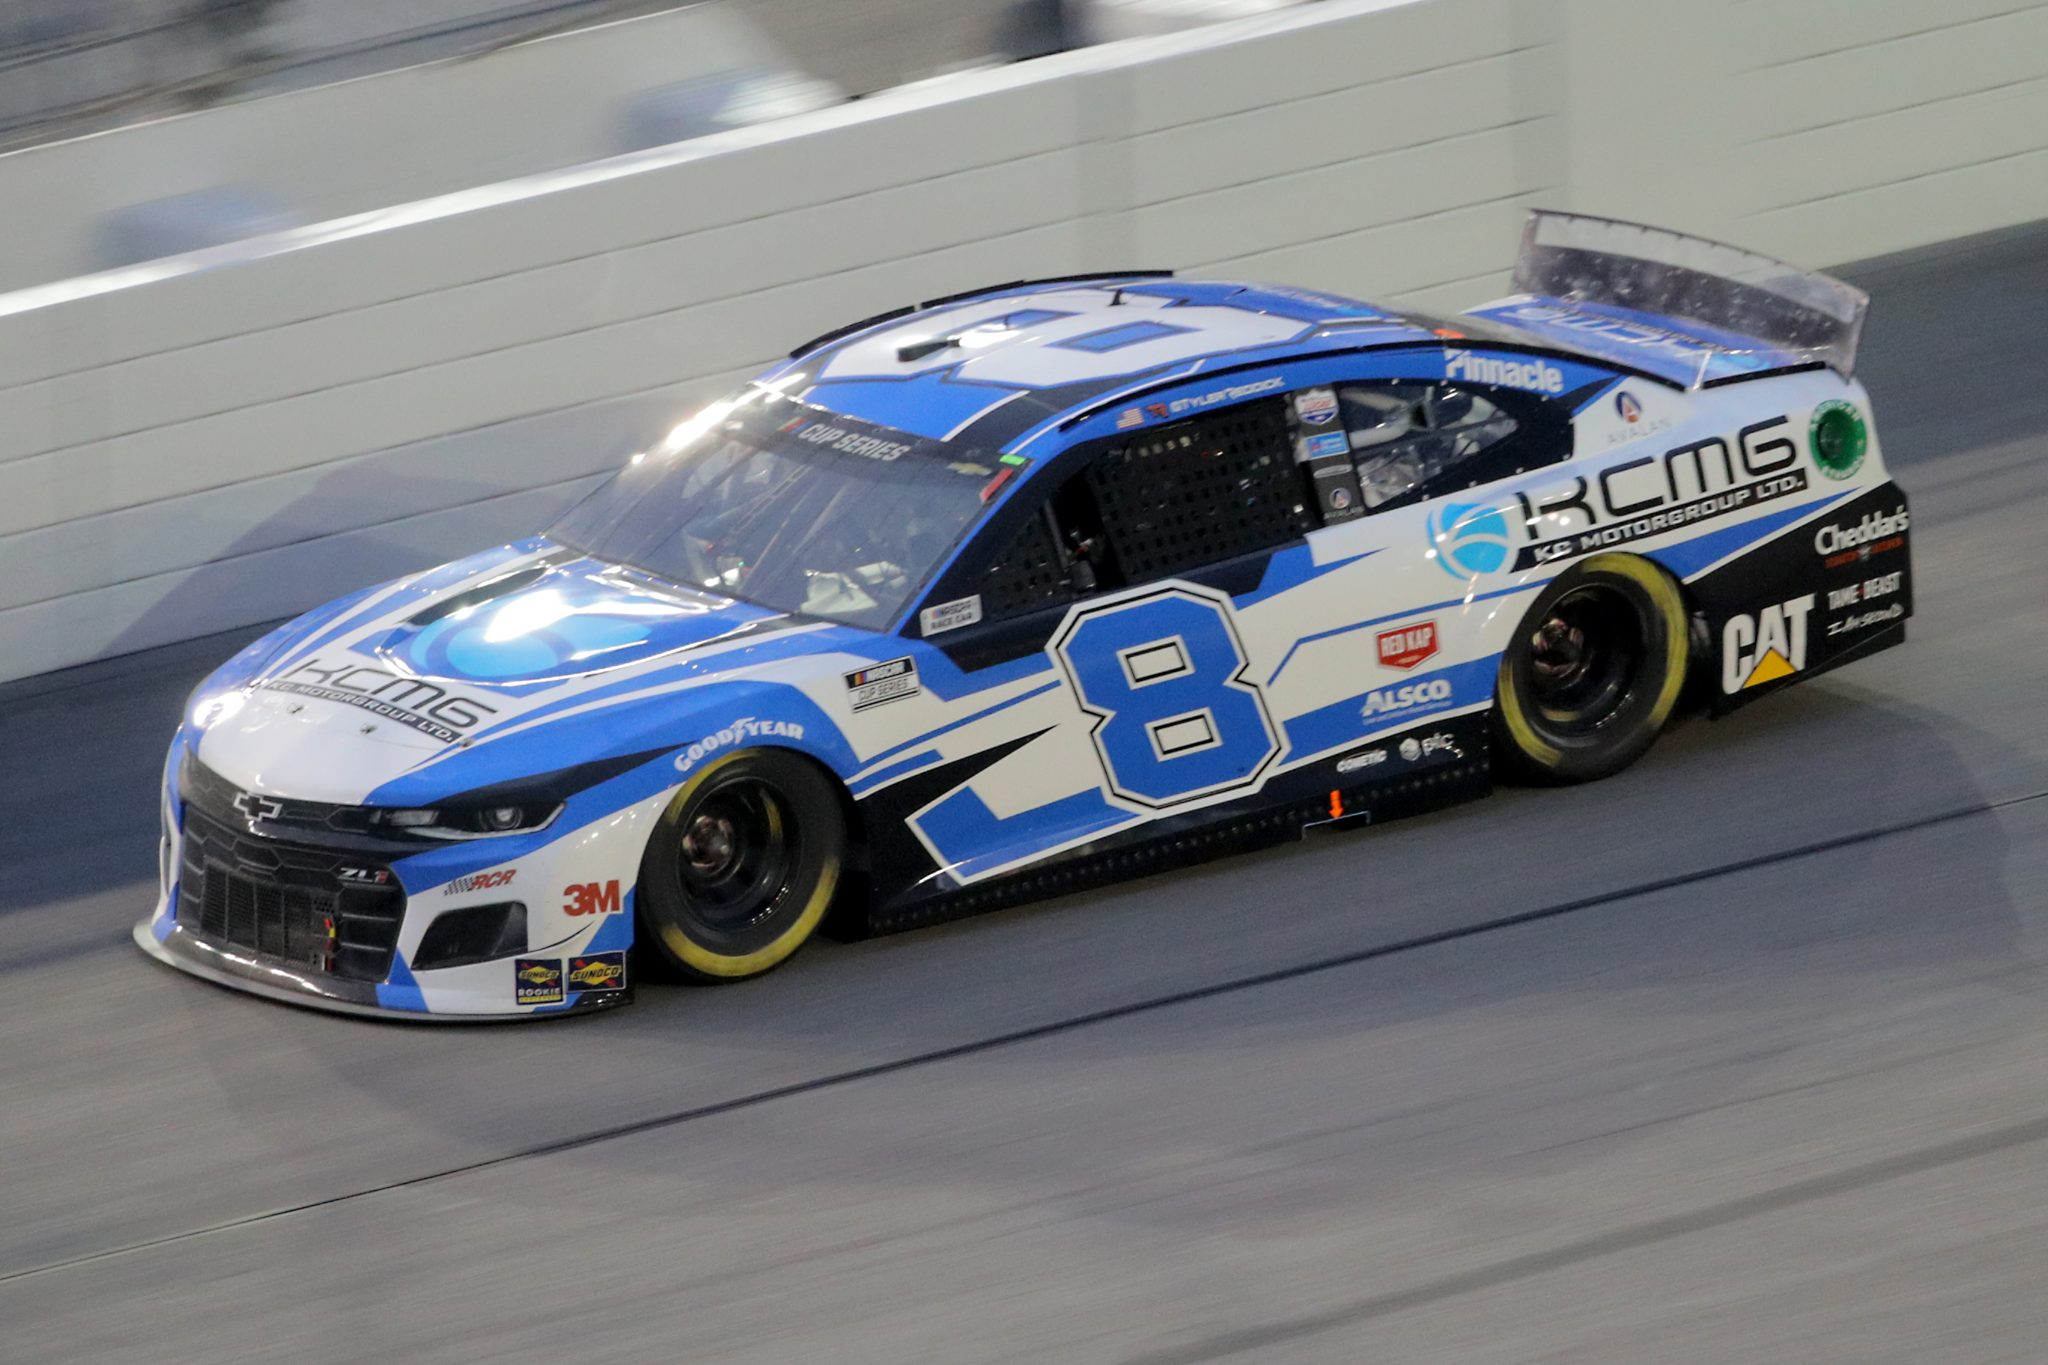 DAYTONA BEACH, FLORIDA - AUGUST 29: Tyler Reddick, driver of the #8 Chevrolet, drives during the NASCAR Cup Series Coke Zero Sugar 400 at Daytona International Speedway on August 29, 2020 in Daytona Beach, Florida. (Photo by Chris Graythen/Getty Images) | Getty Images